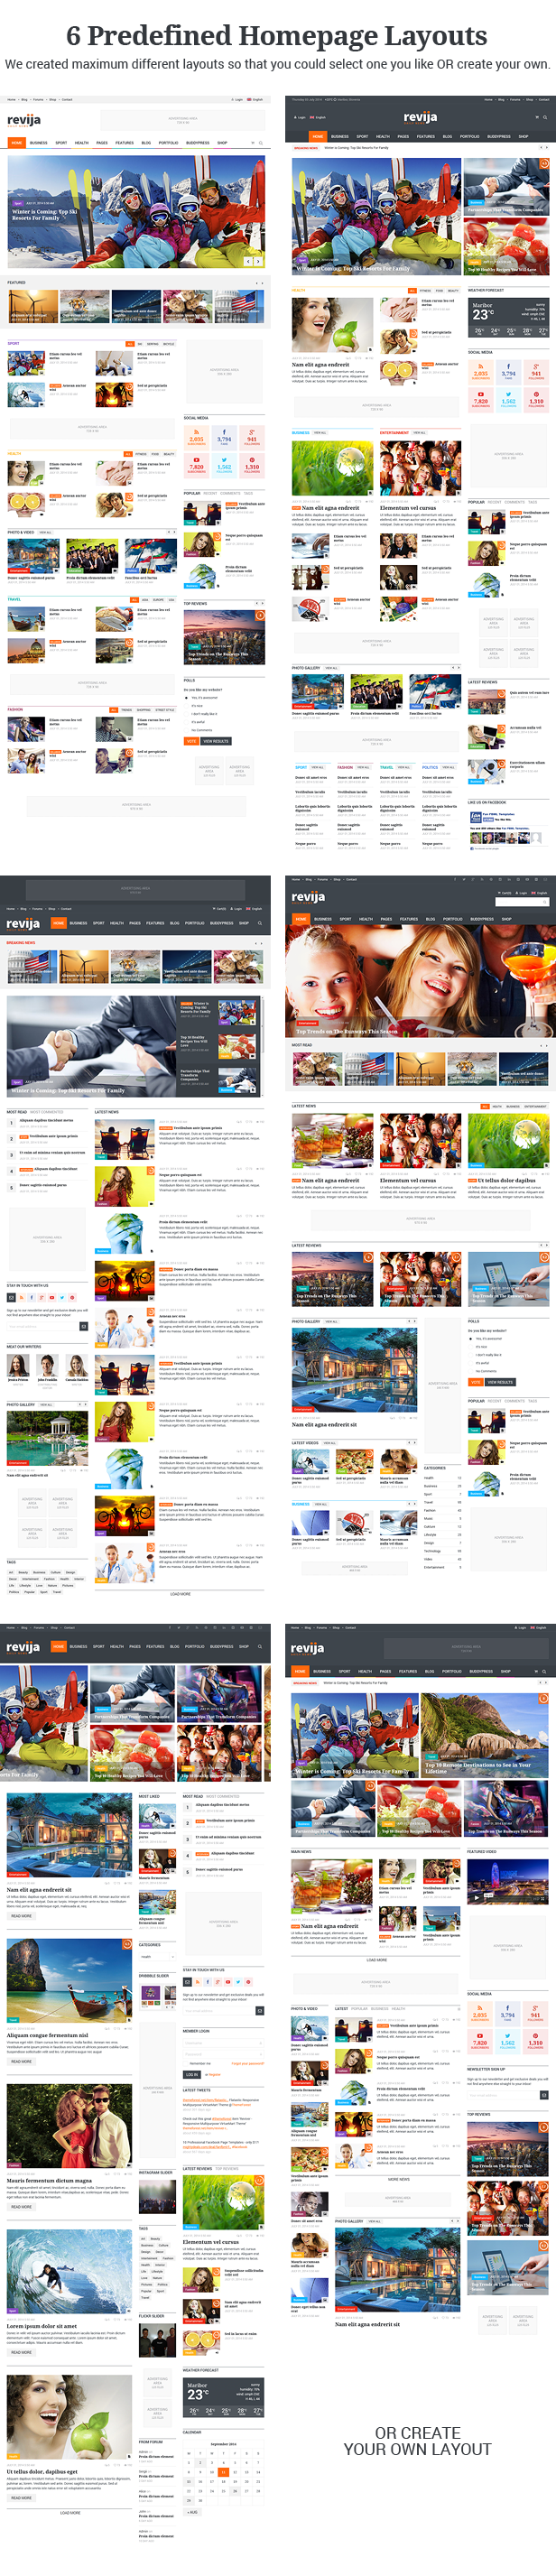 feature10 - Revija – Premium Blog/Magazine Drupal theme